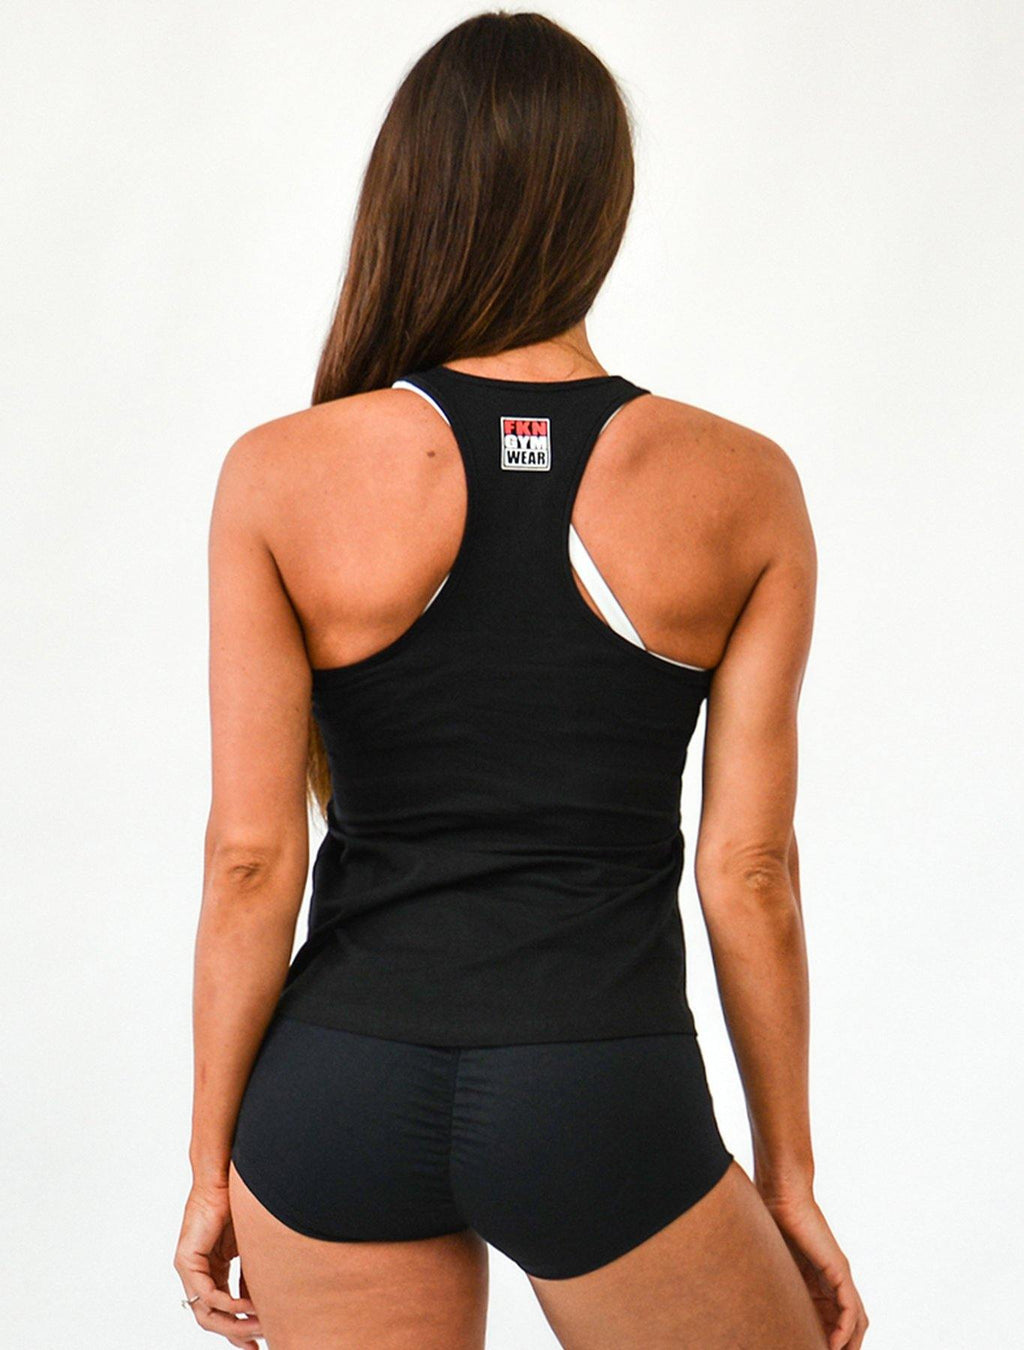 Force | FKNLIFT Gym Singlet - FKN Gym Wear